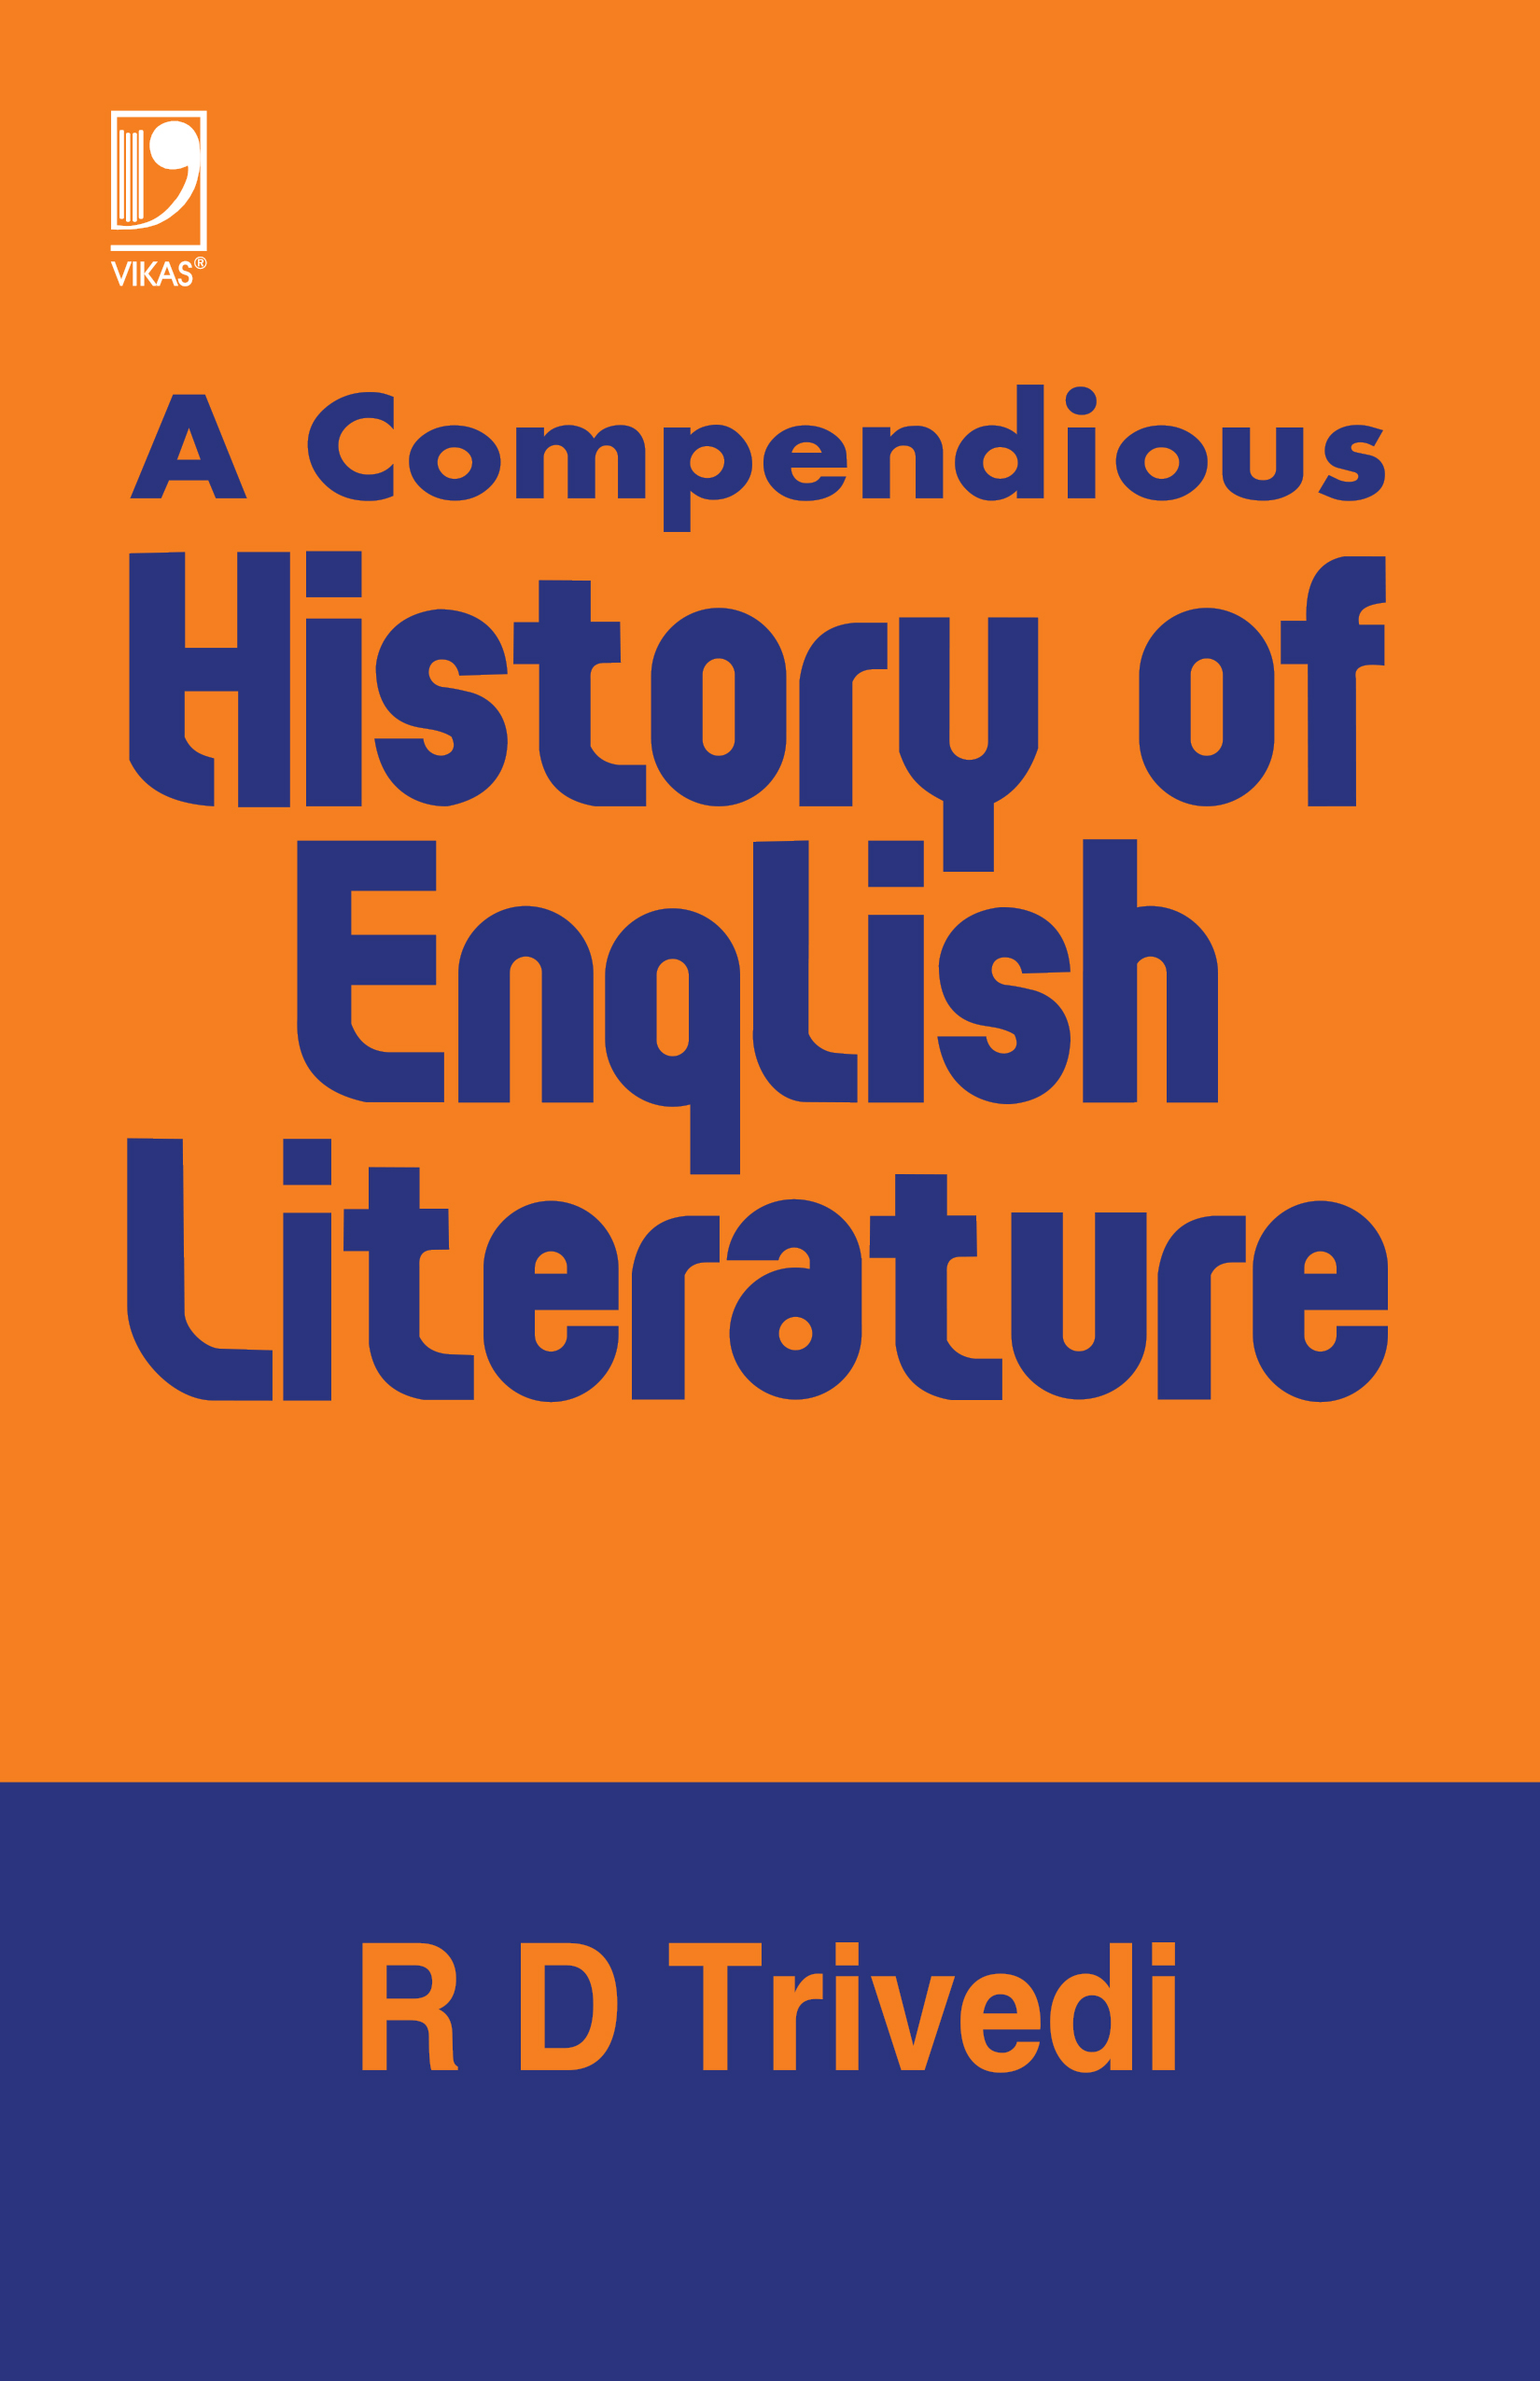 A Compendious History of English Literature, 1/e